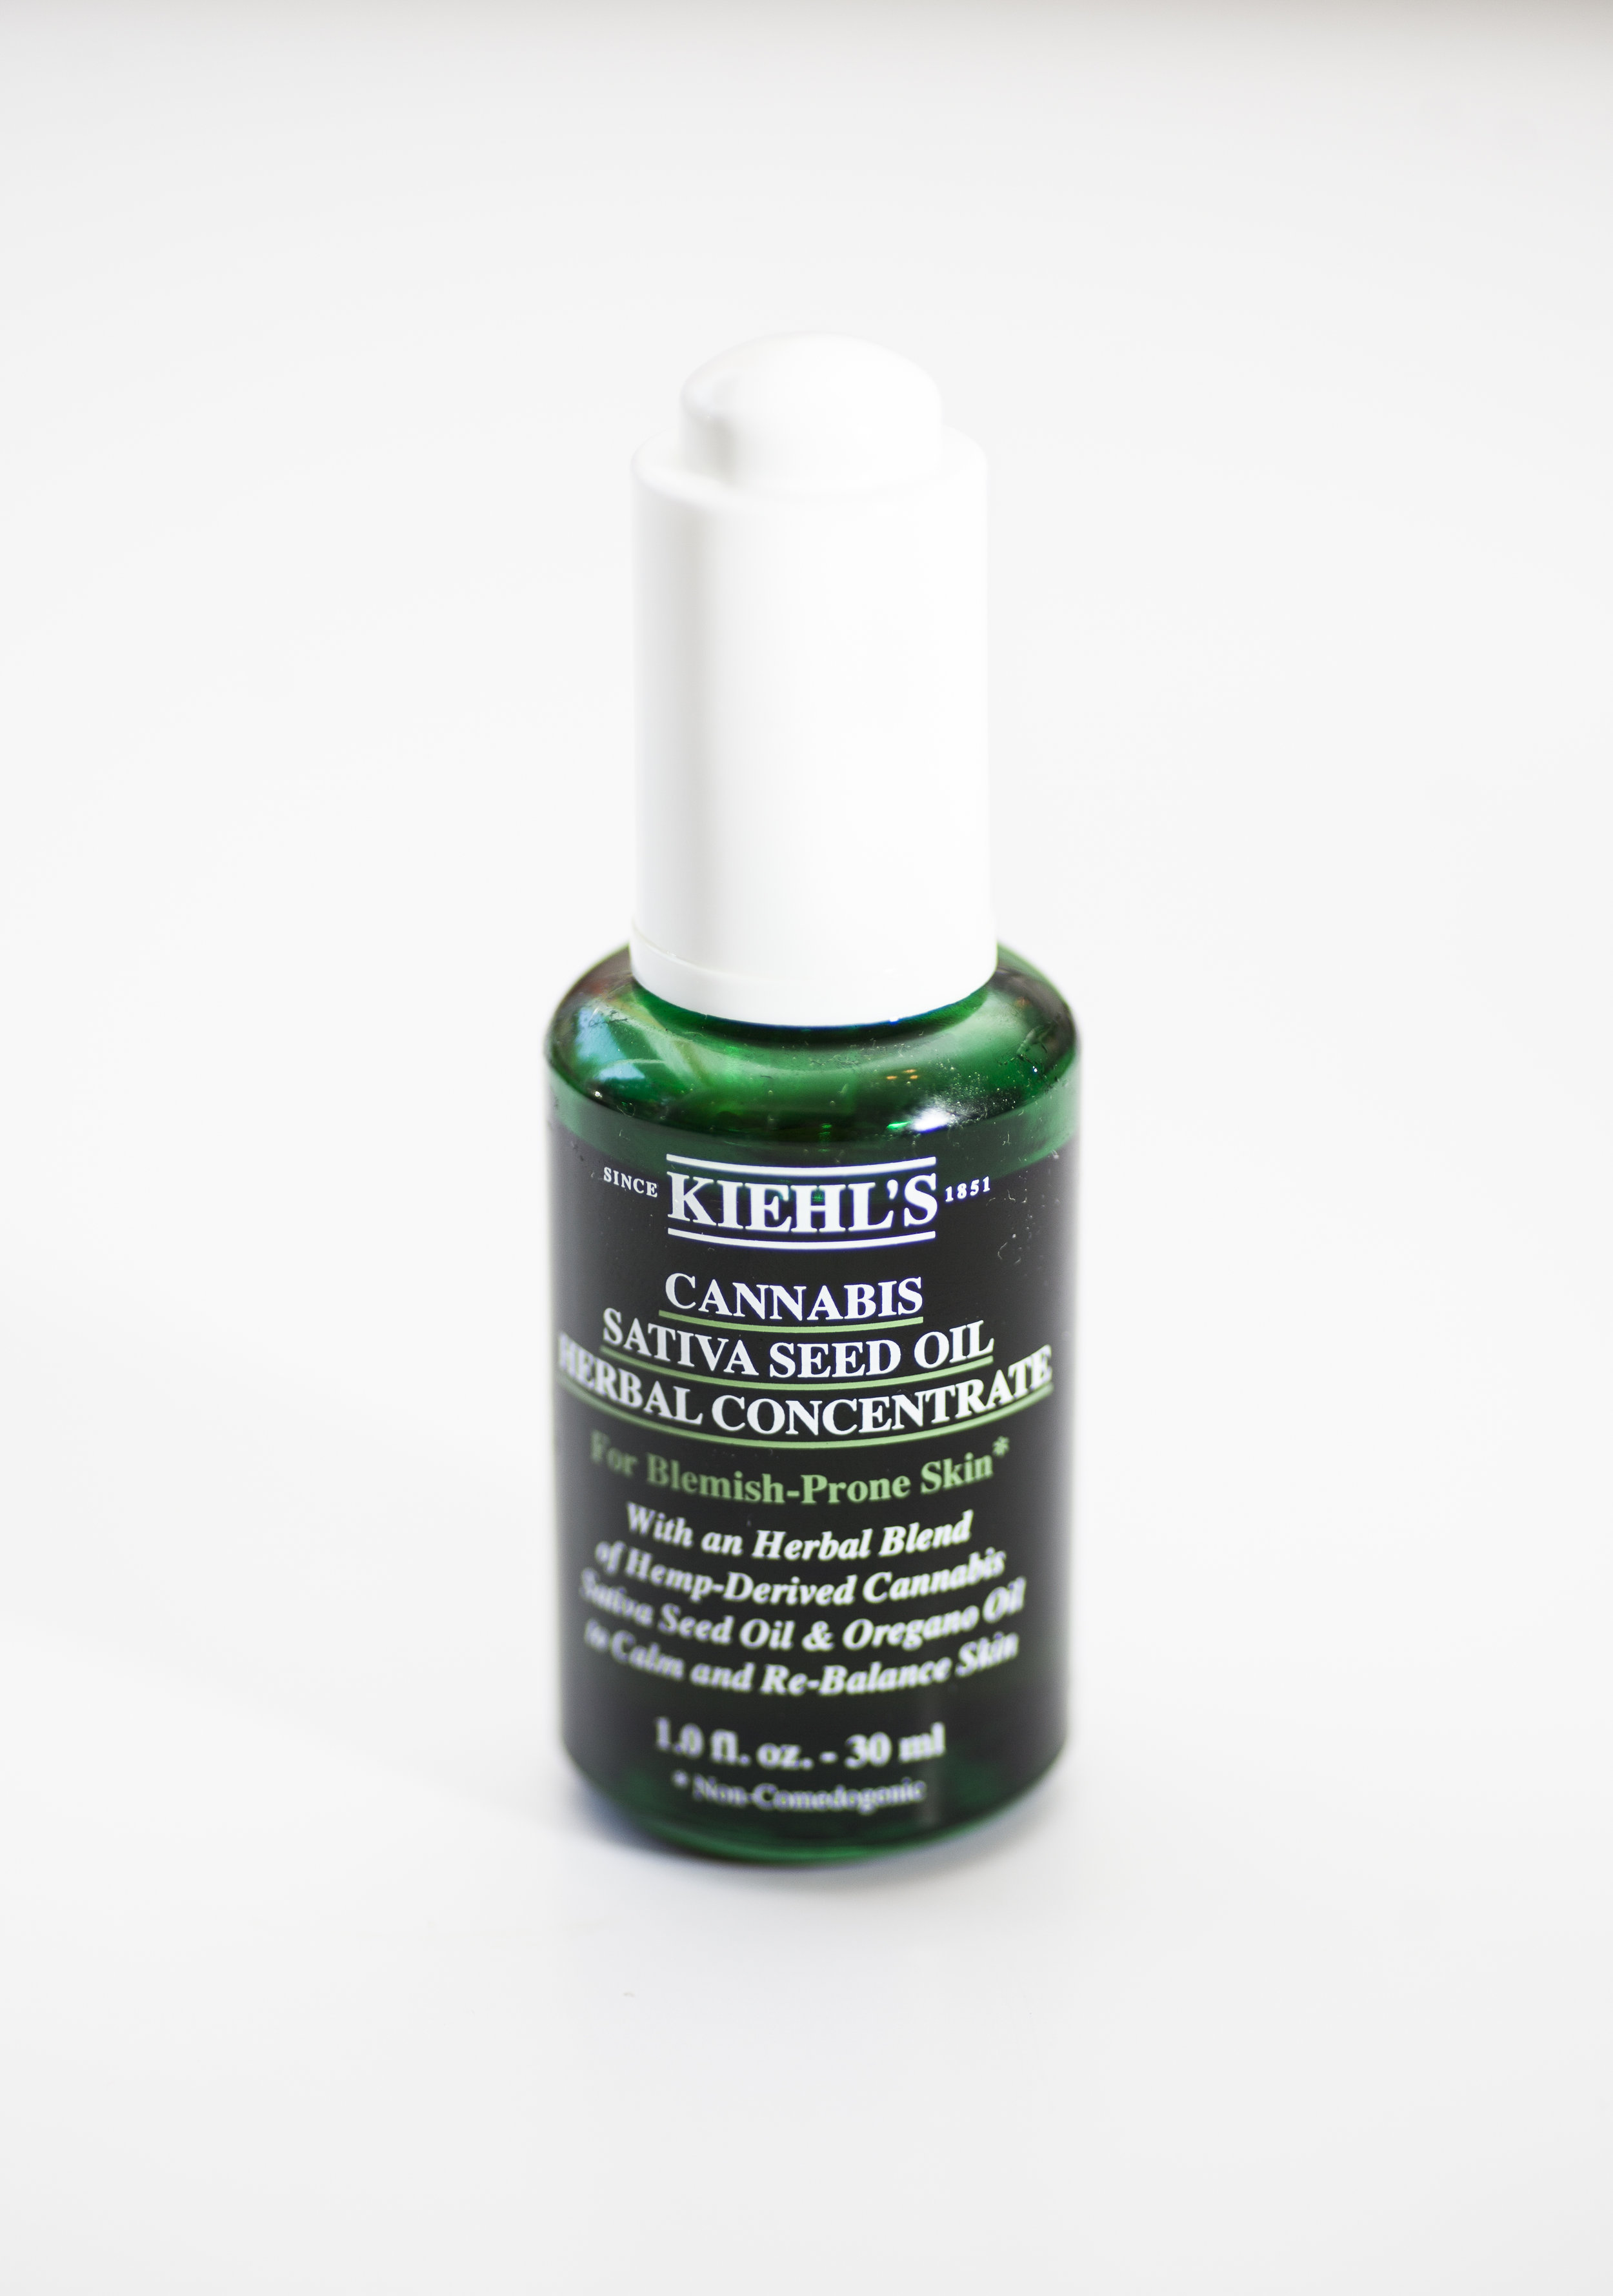 Like Anne mentioned, great for Rosacea, Redness, and as advertised - Blemish Prone skin.